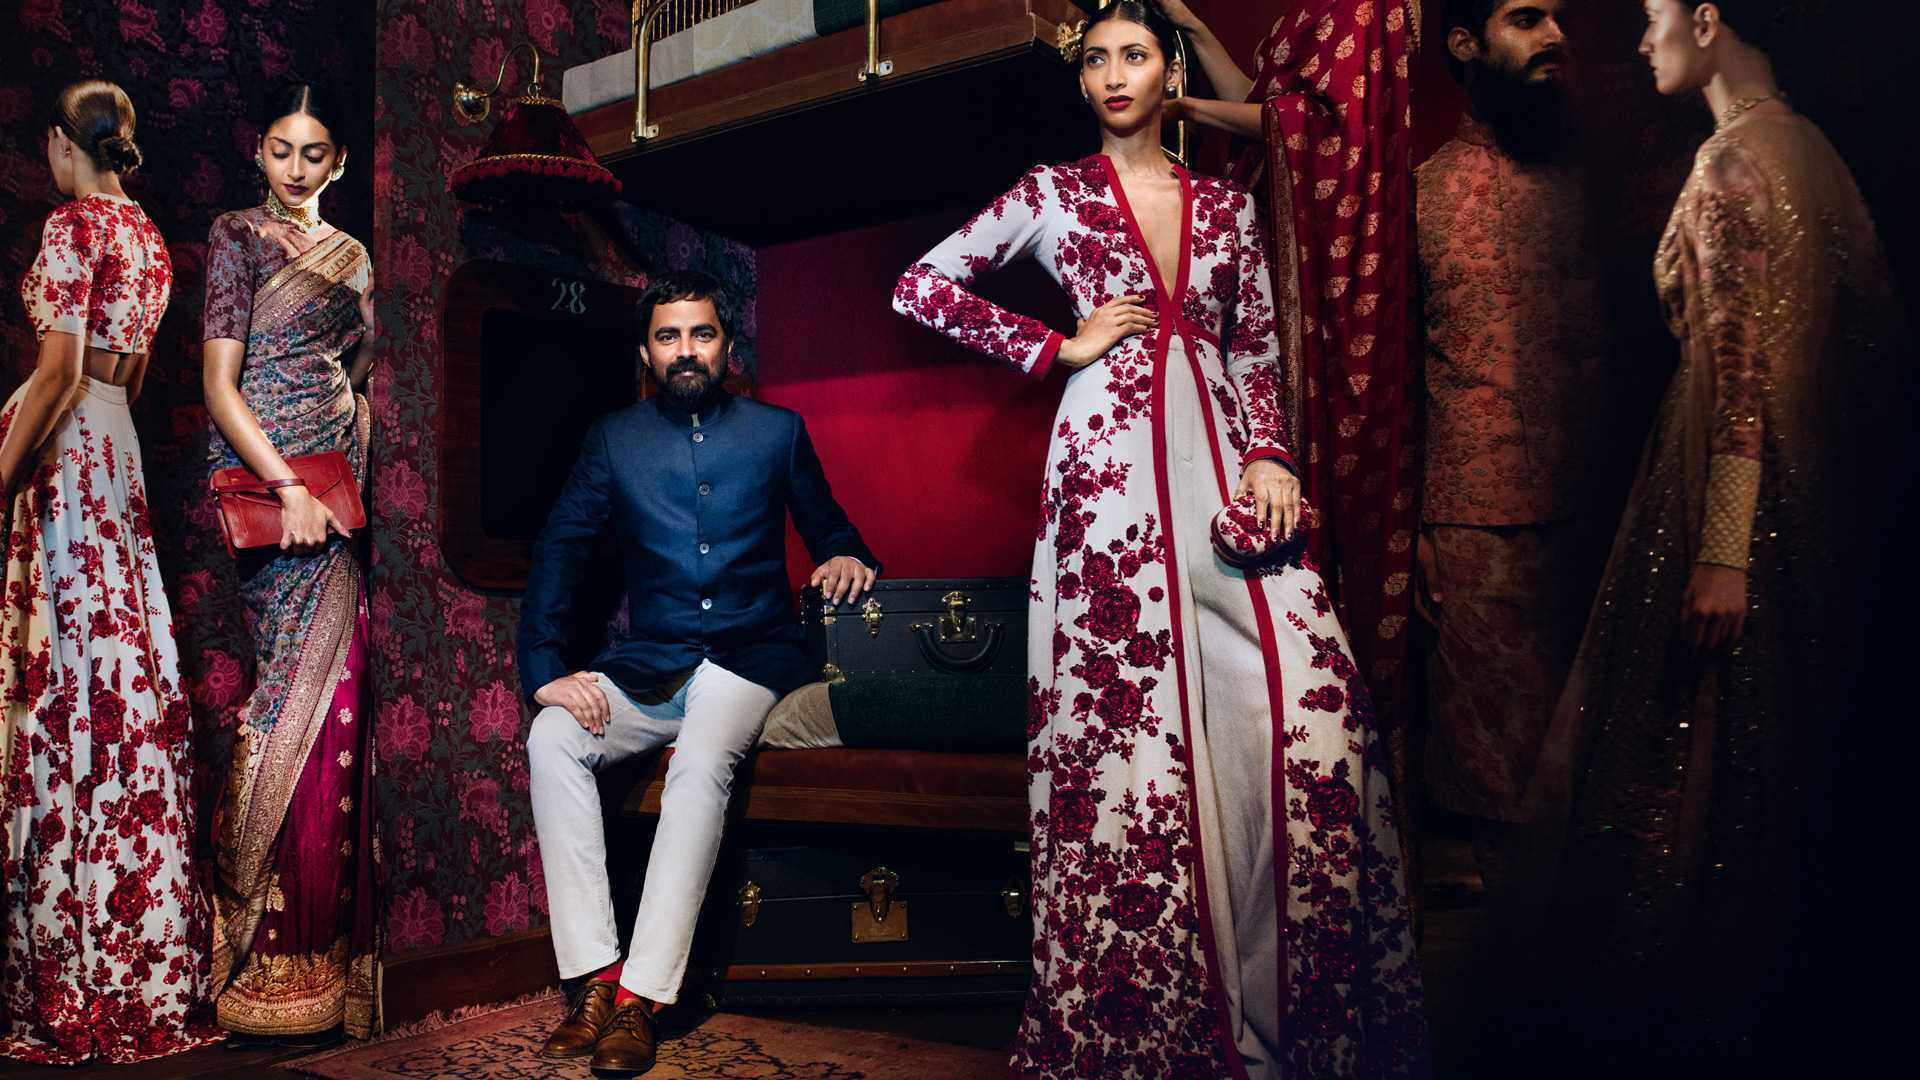 What you can expect from Sabyasachis grand finale for Lakm Fashion Week  Vogue India